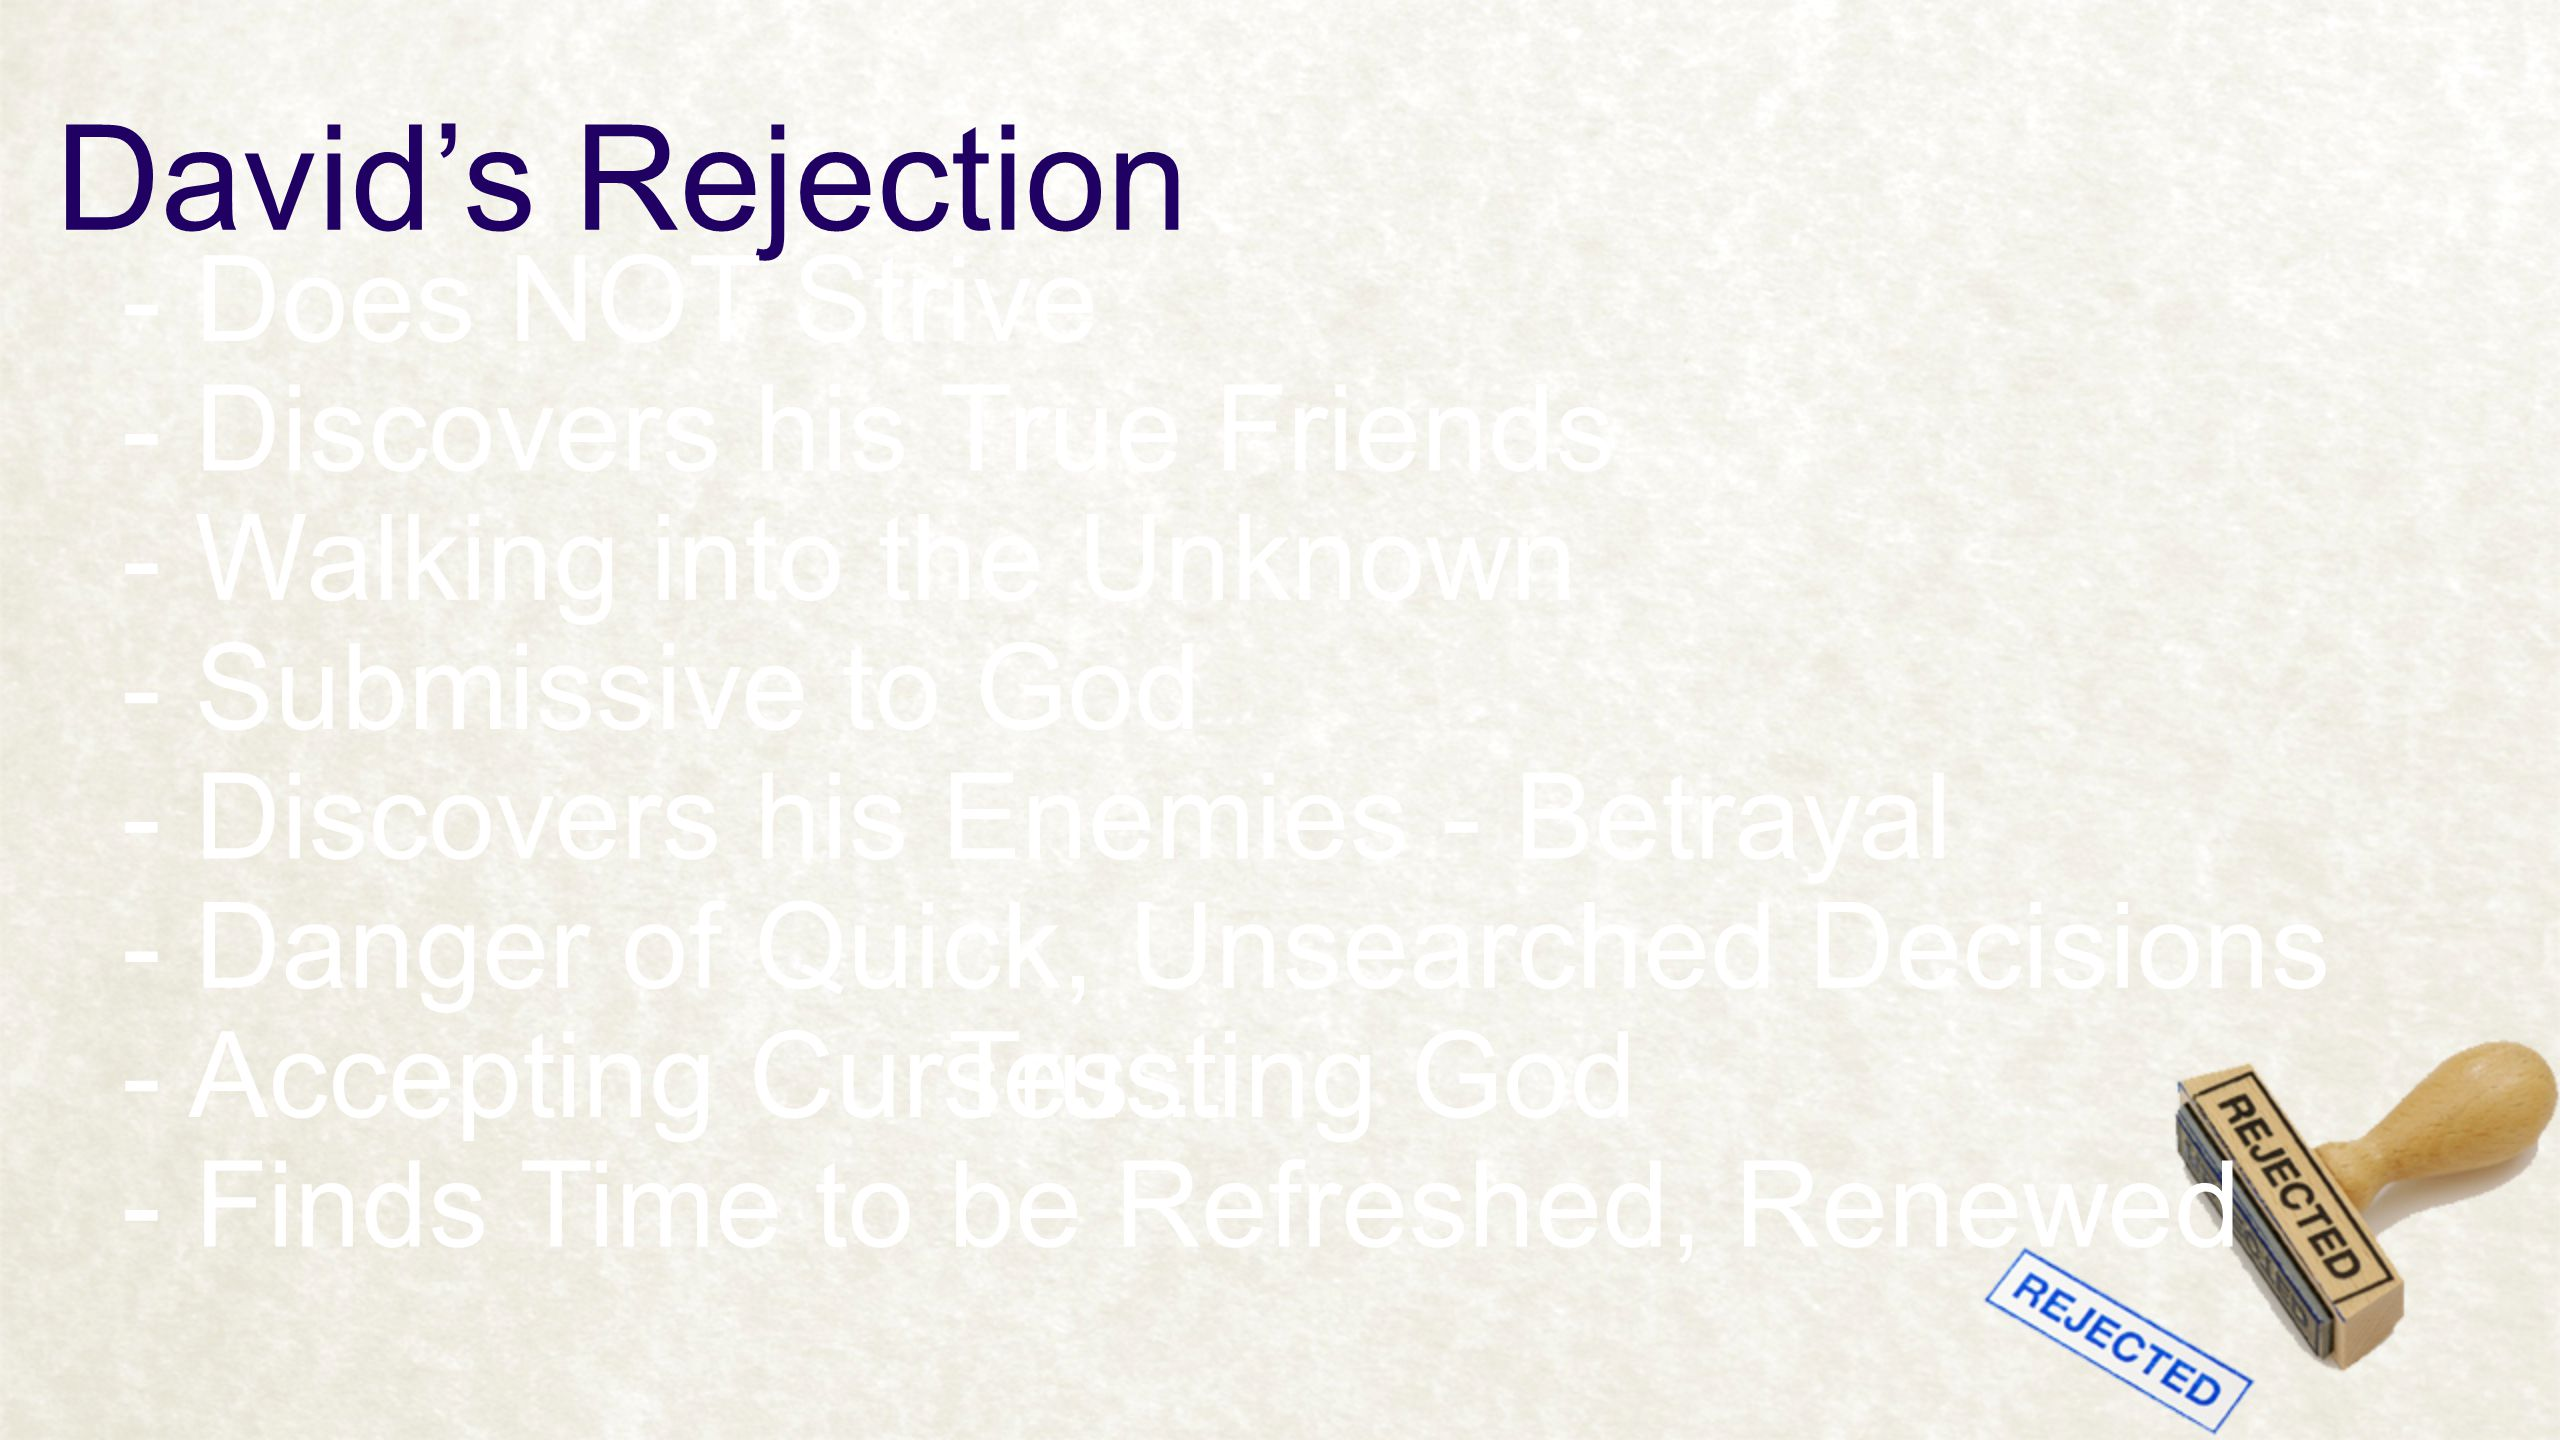 David's Rejection - Does NOT Strive - Discovers his True Friends - Walking into the Unknown - Discovers his Enemies - Betrayal - Submissive to God - Danger of Quick, Unsearched Decisions - Accepting Curses...Trusting God - Finds Time to be Refreshed, Renewed